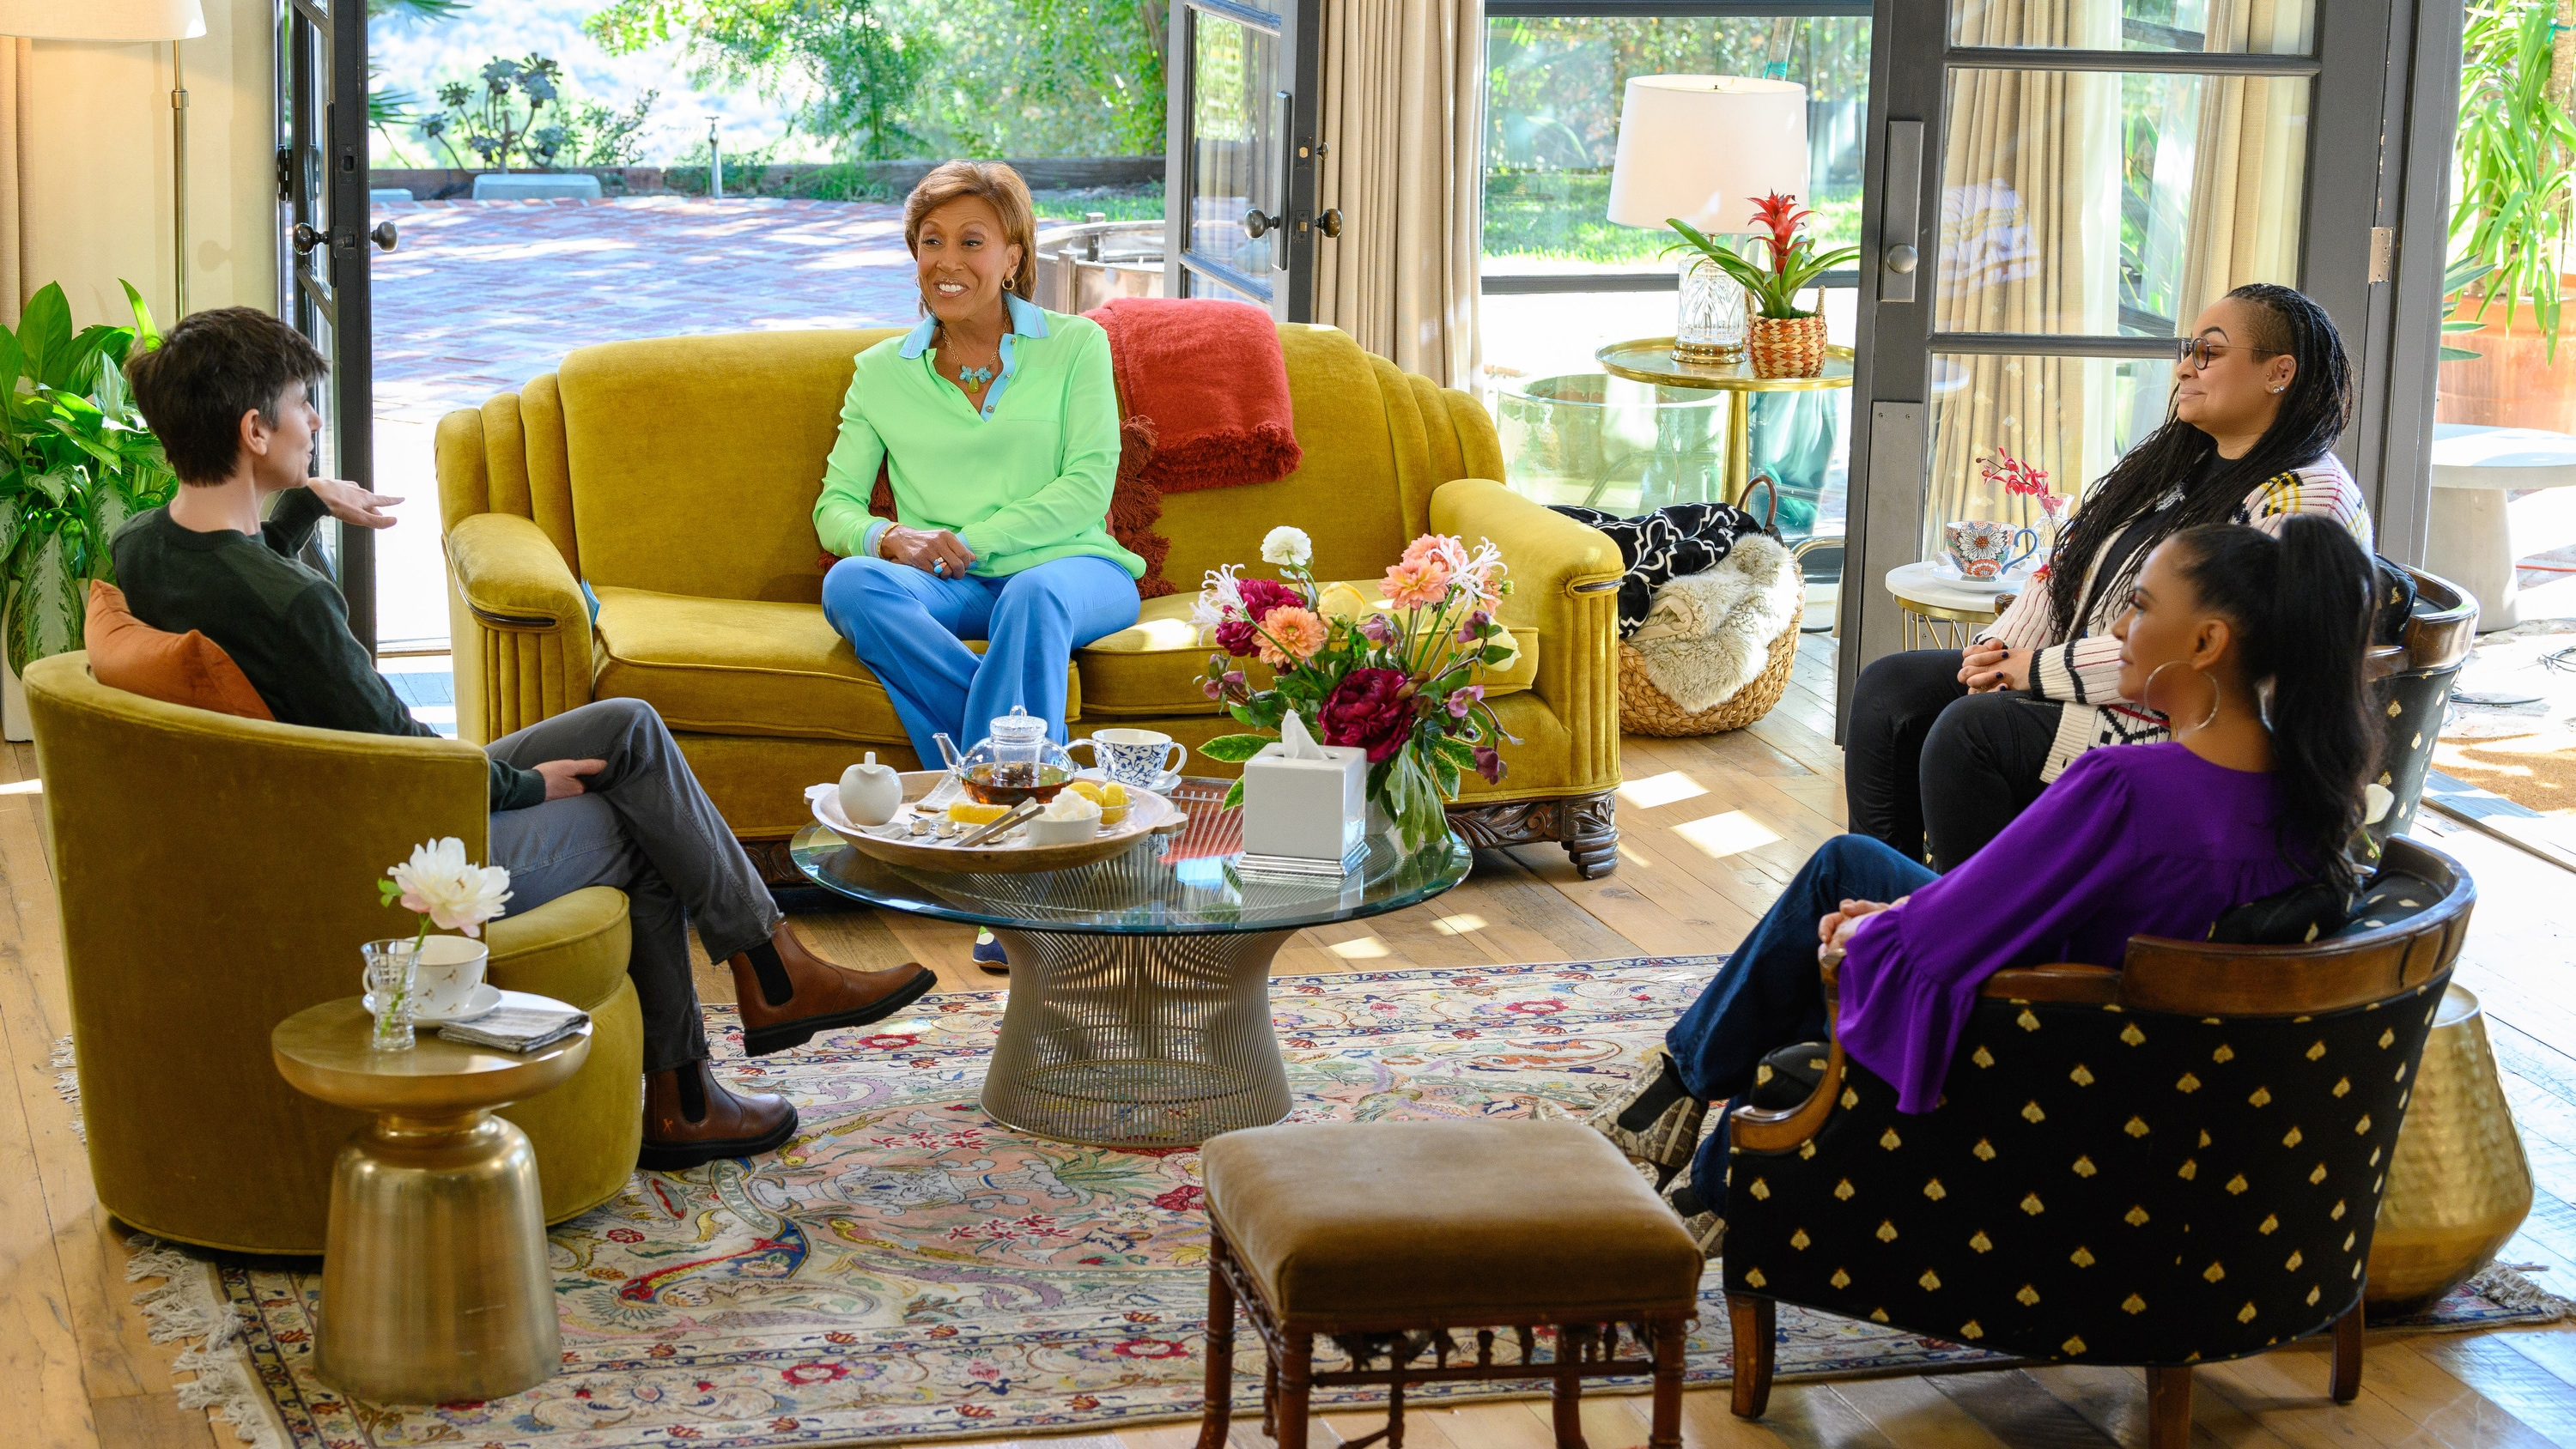 Disney+ To Debut New Original Series 'Turning The Tables With Robin Roberts,' On Friday, July 30